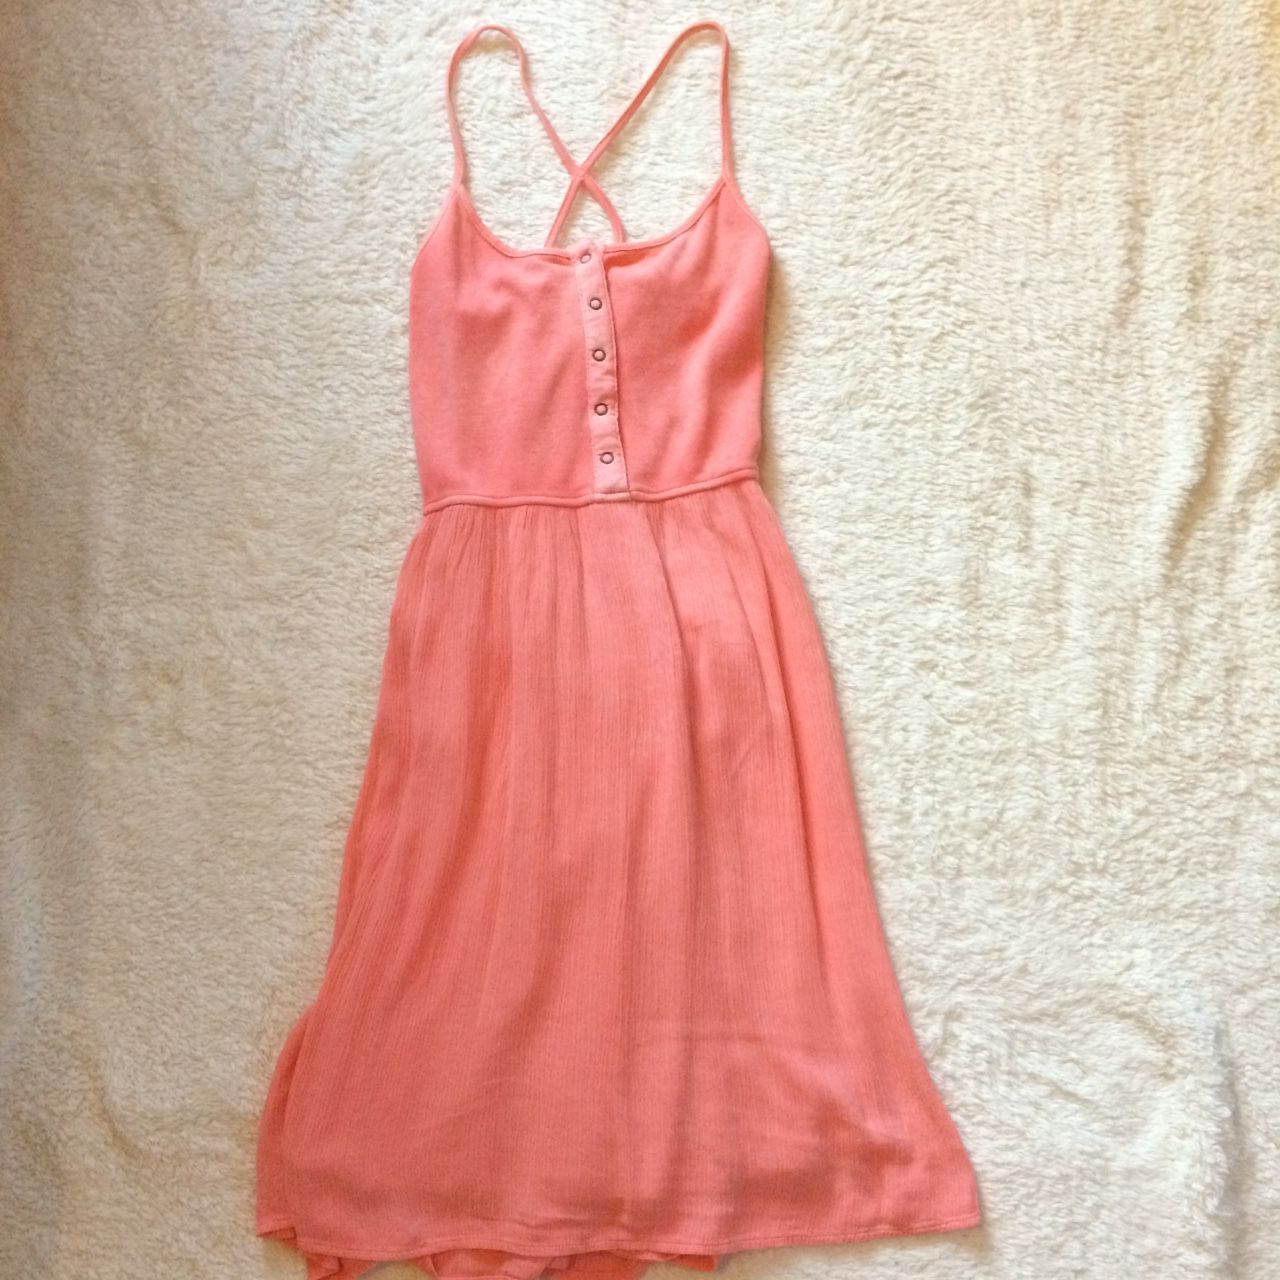 Coral Knee Length Dress With Cross Back From Target Depop Knee Length Dress Dresses Knee Length [ 1280 x 1280 Pixel ]